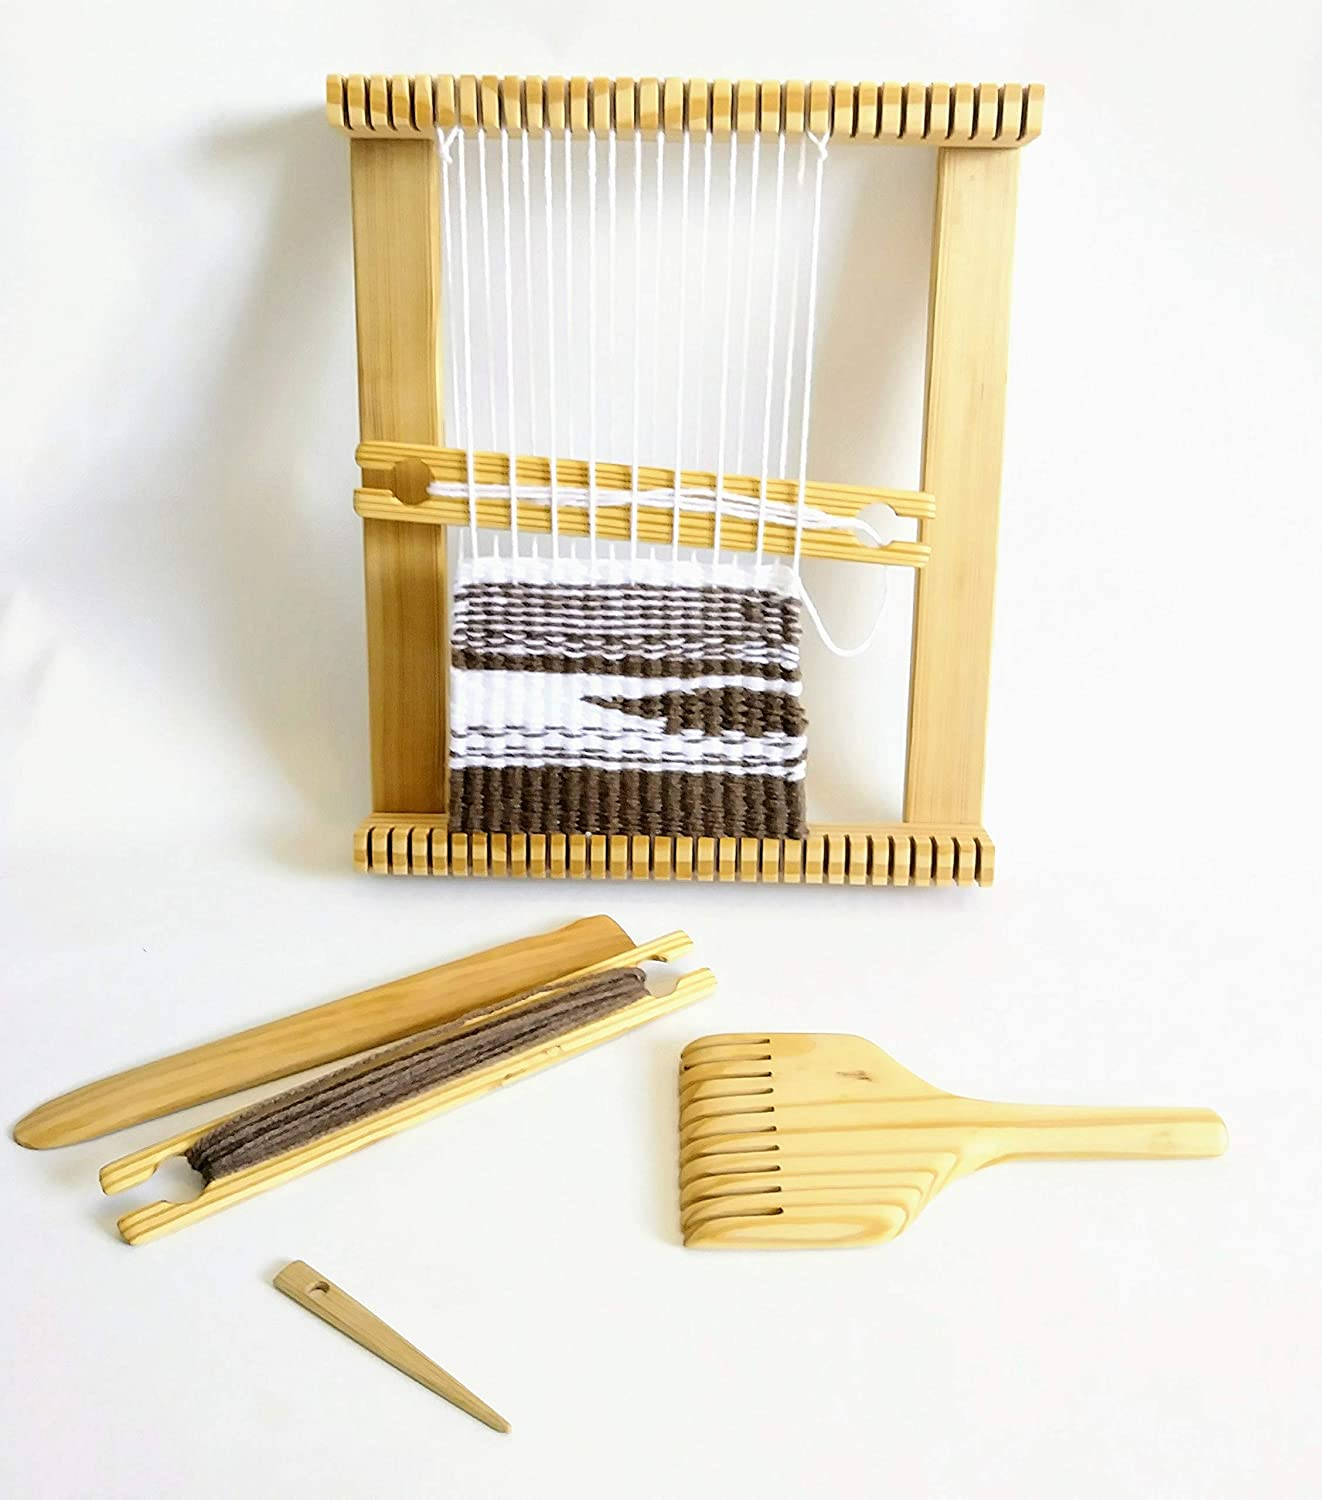 Weaving Loom12x15 Inches with Tapestry Beater, shuttles and Shed Stick. Free Needle Included ALE Crafting supplies 4336906238